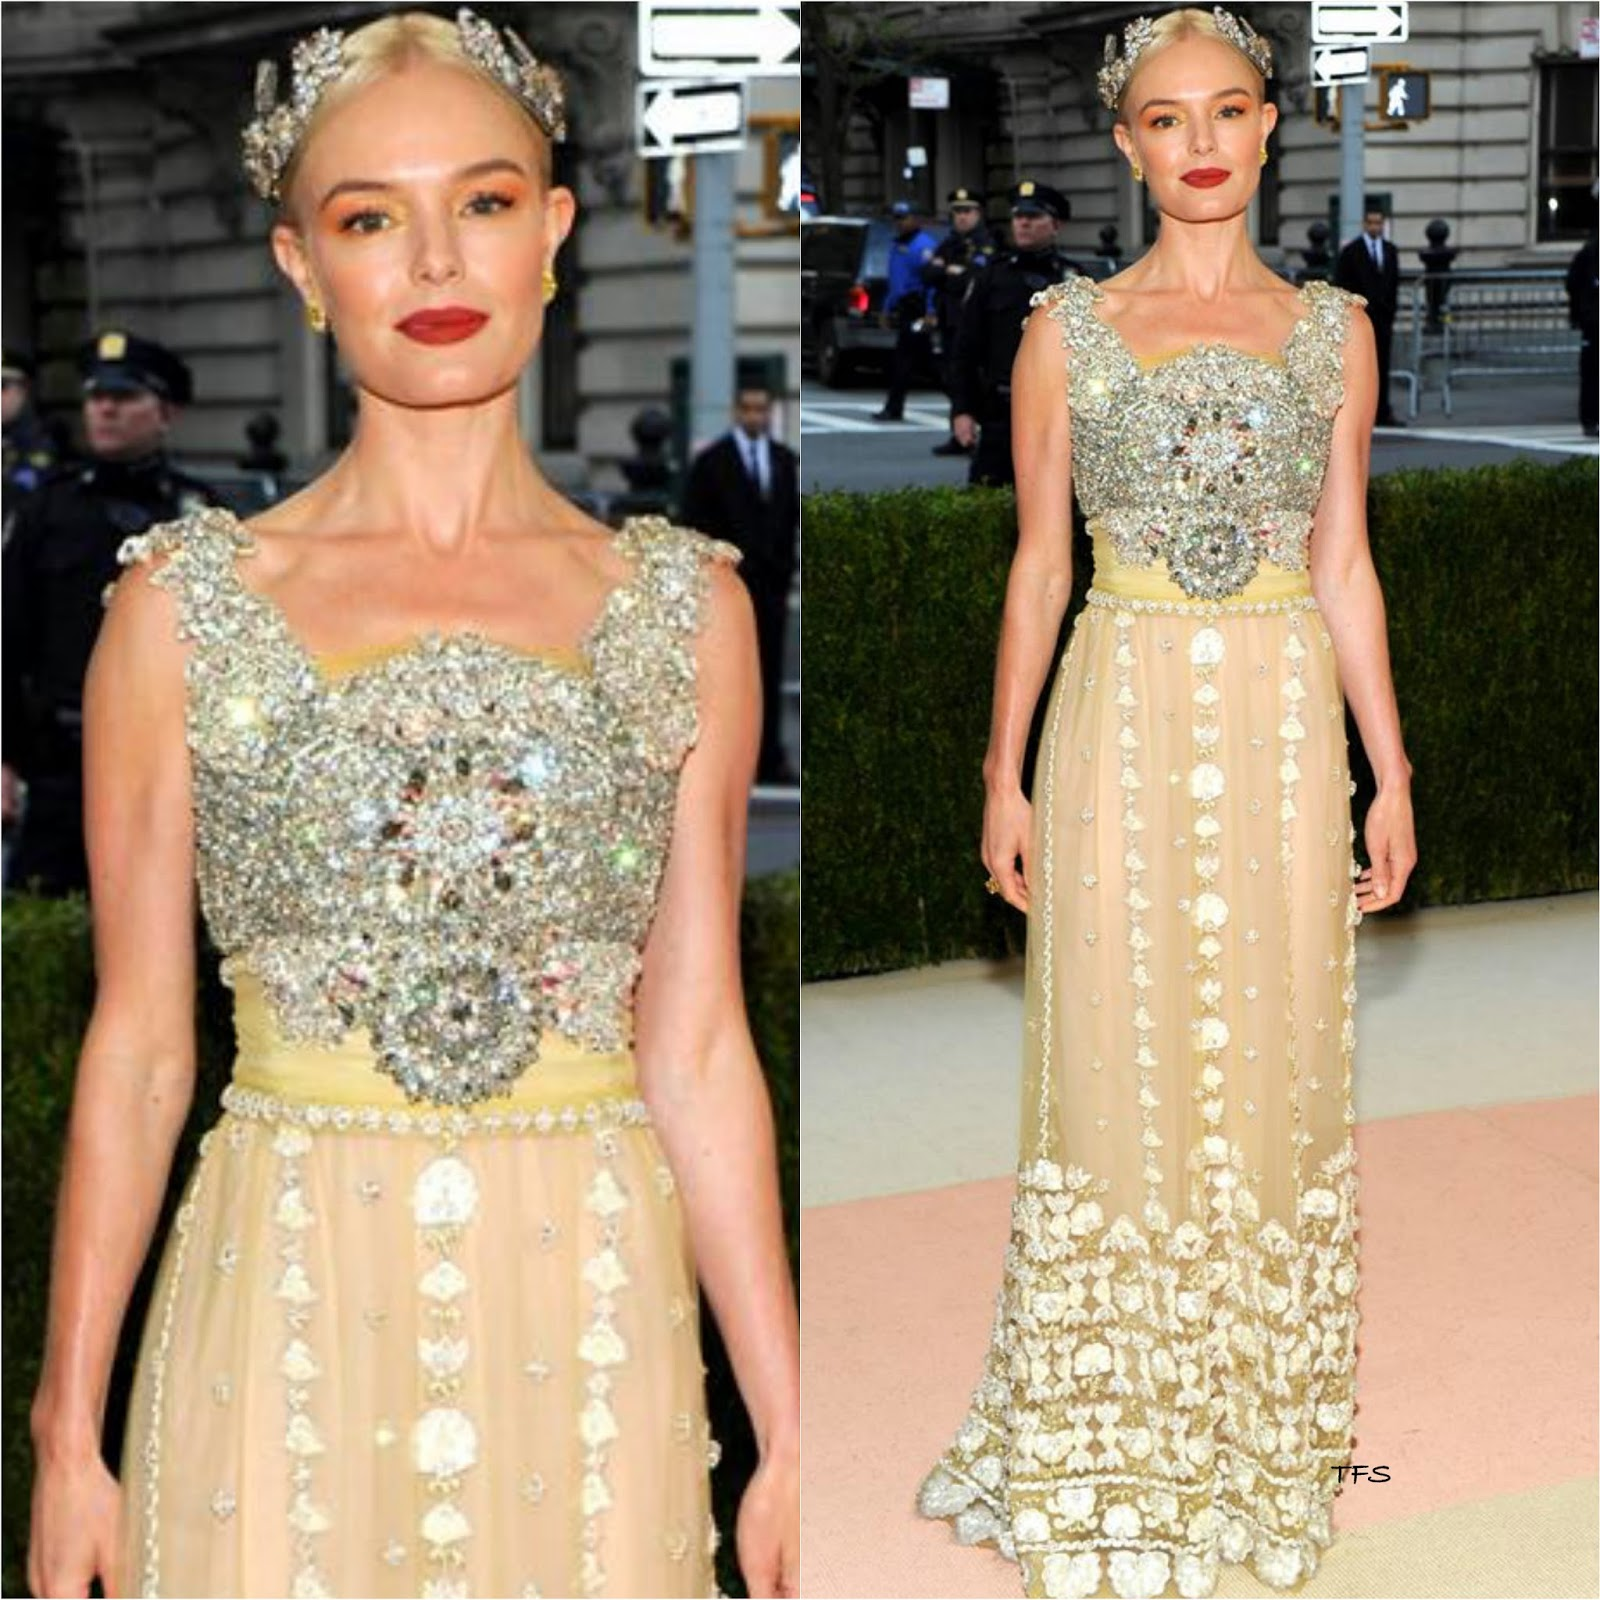 027118d1b689 Kate Bosworth in Dolce   Gabbana at the 2016 MET Gala